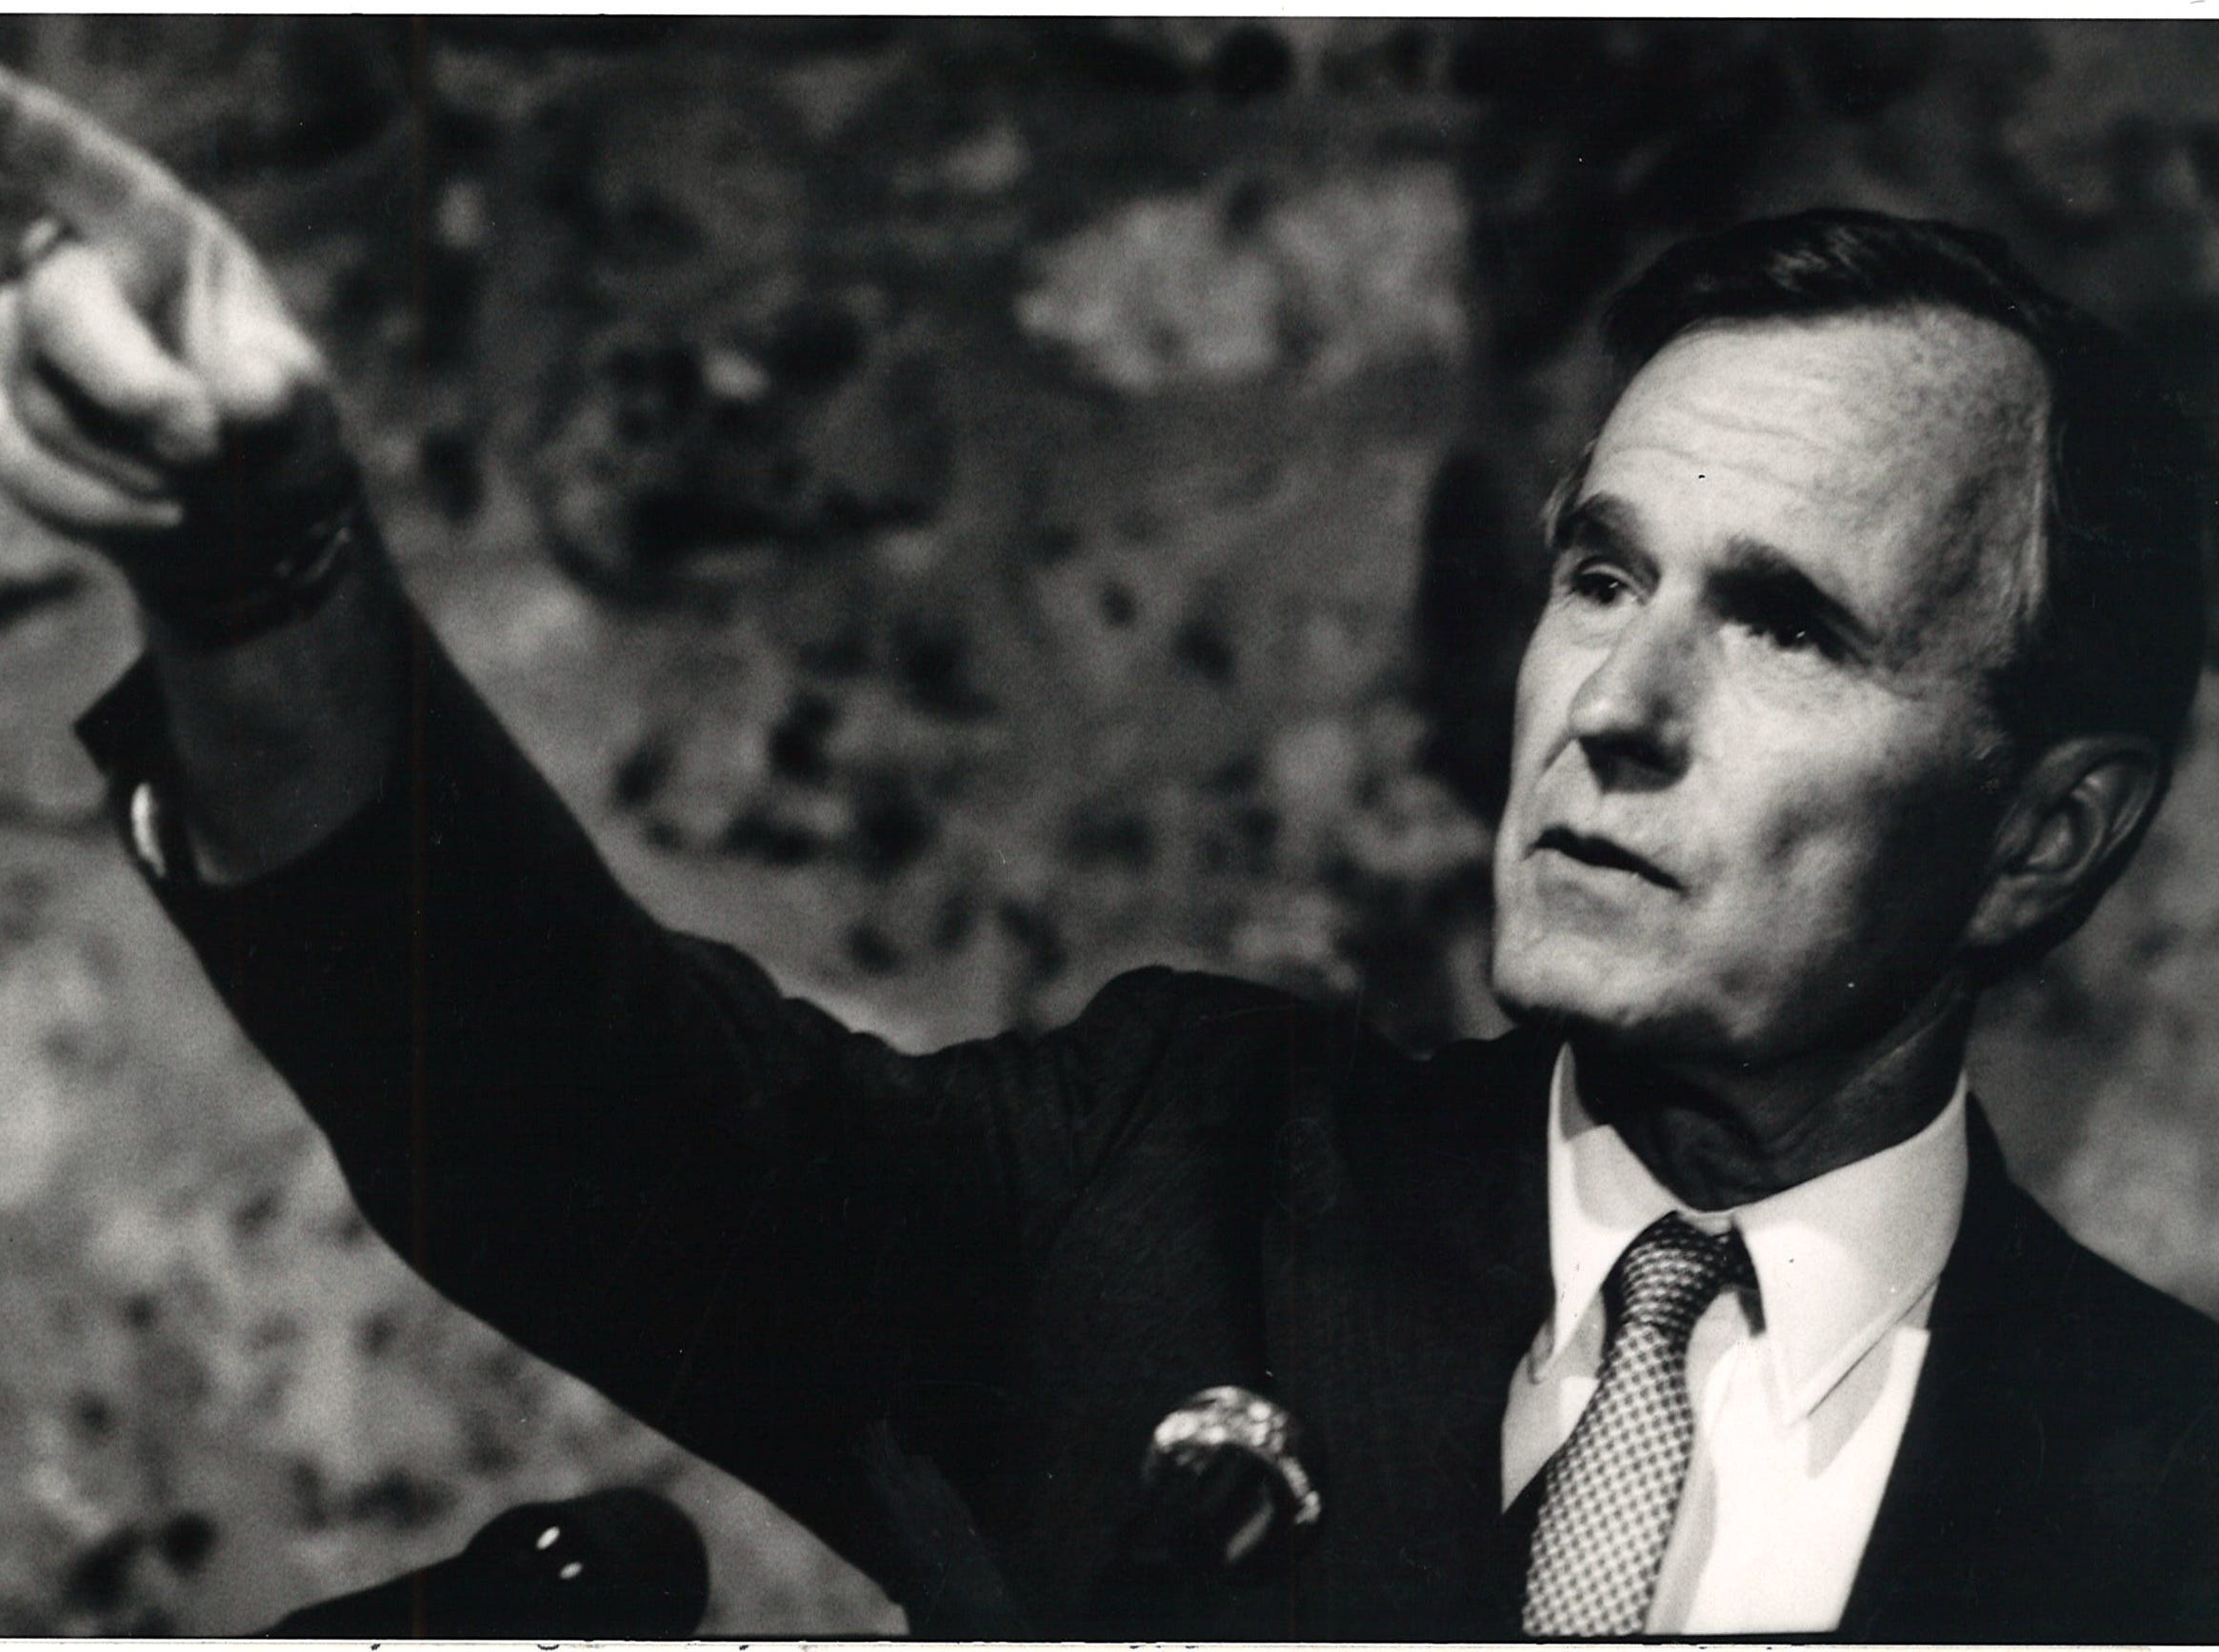 Vice president George H.W. Bush on the campaign trail in Beeville, Texas on May 31, 1984.